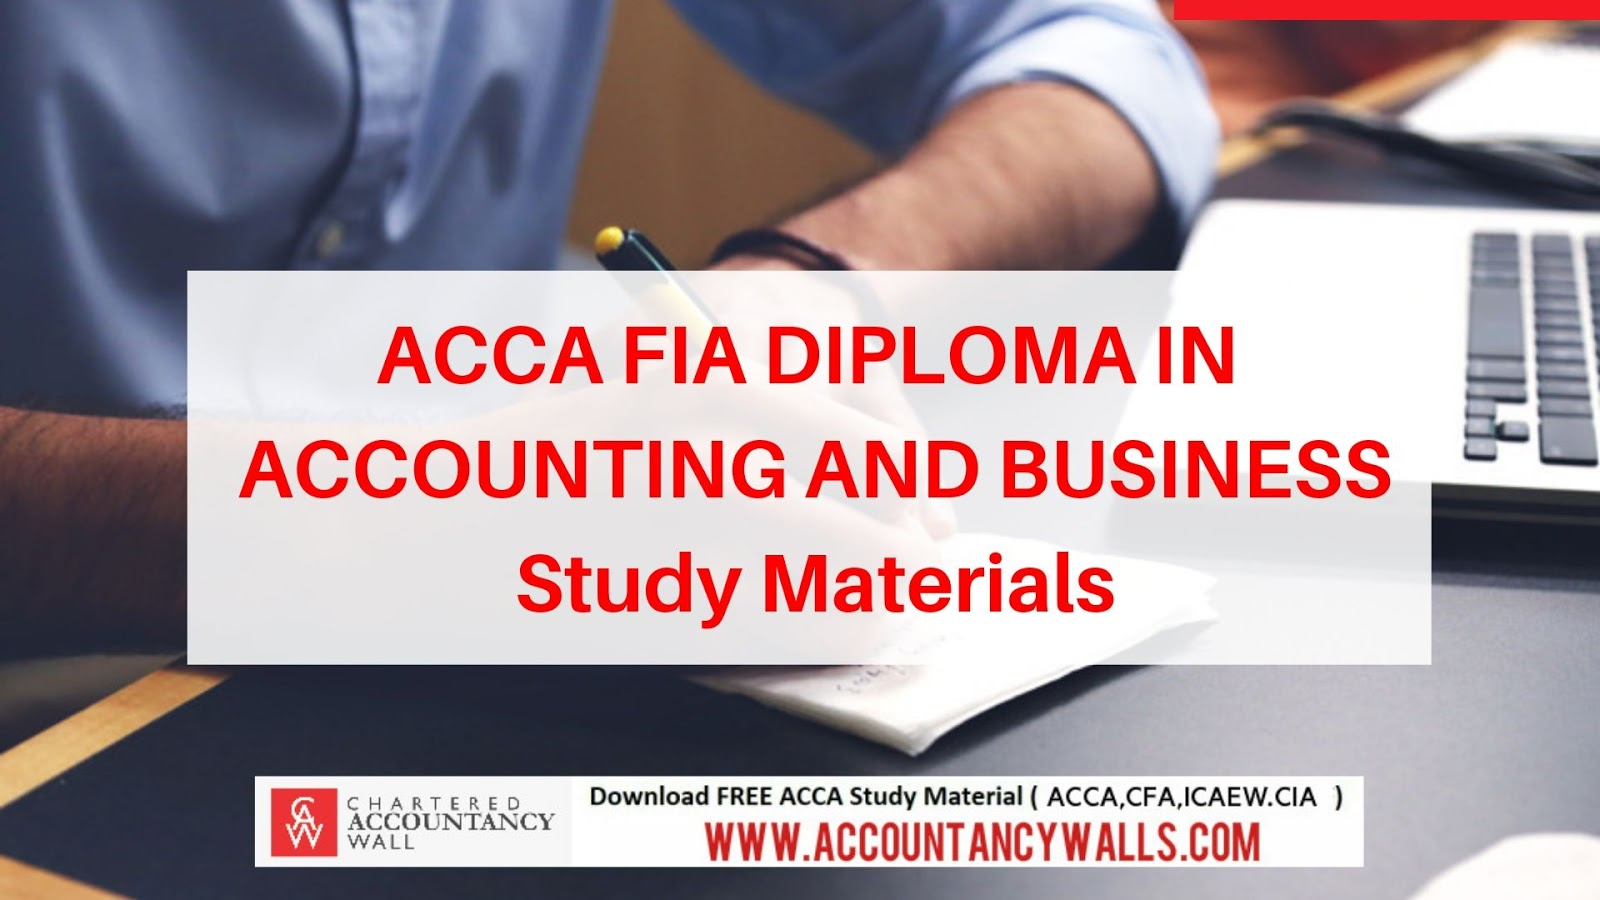 ACCA FIA DIPLOMA IN ACCOUNTING AND BUSINESS - FREE